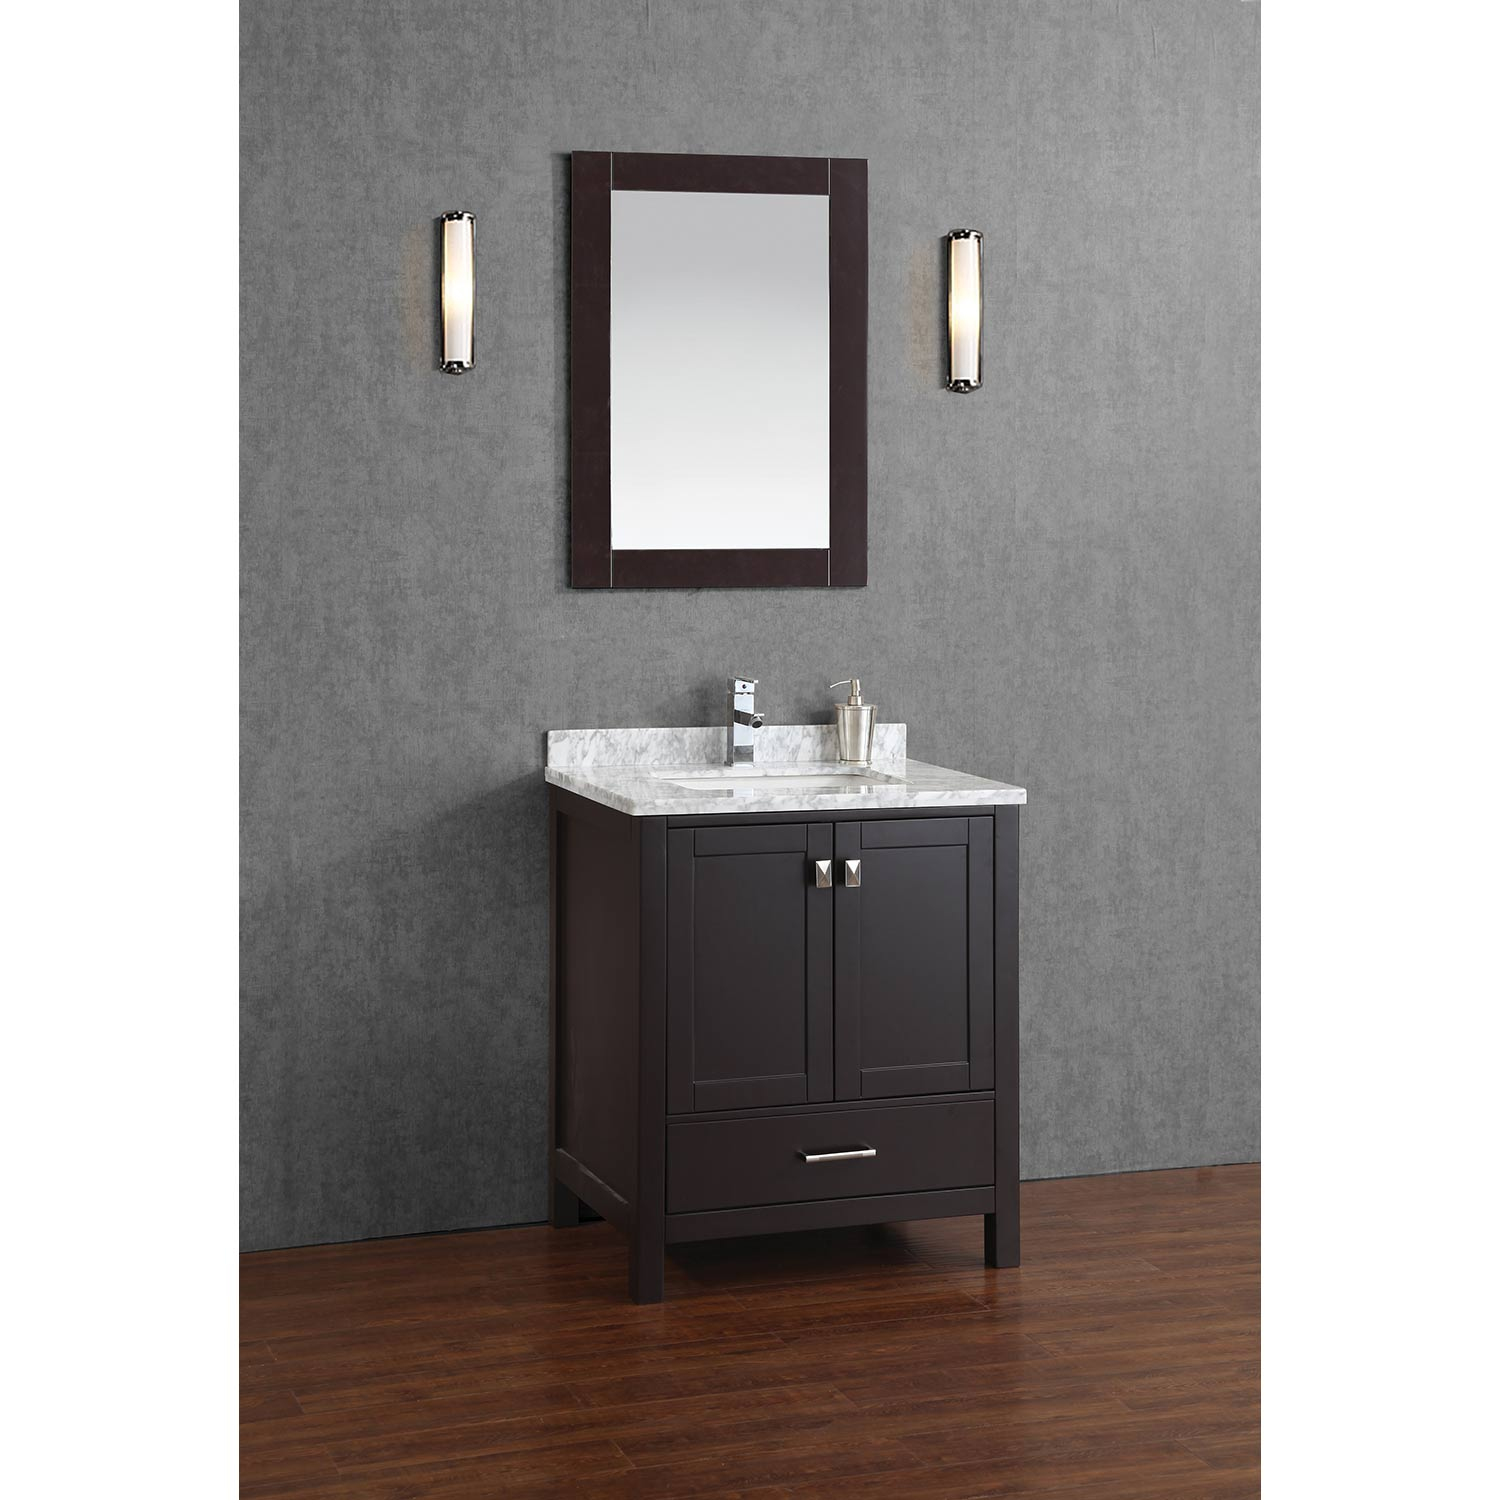 Buy Vincent 30 Inch Solid Wood Double Bathroom Vanity In